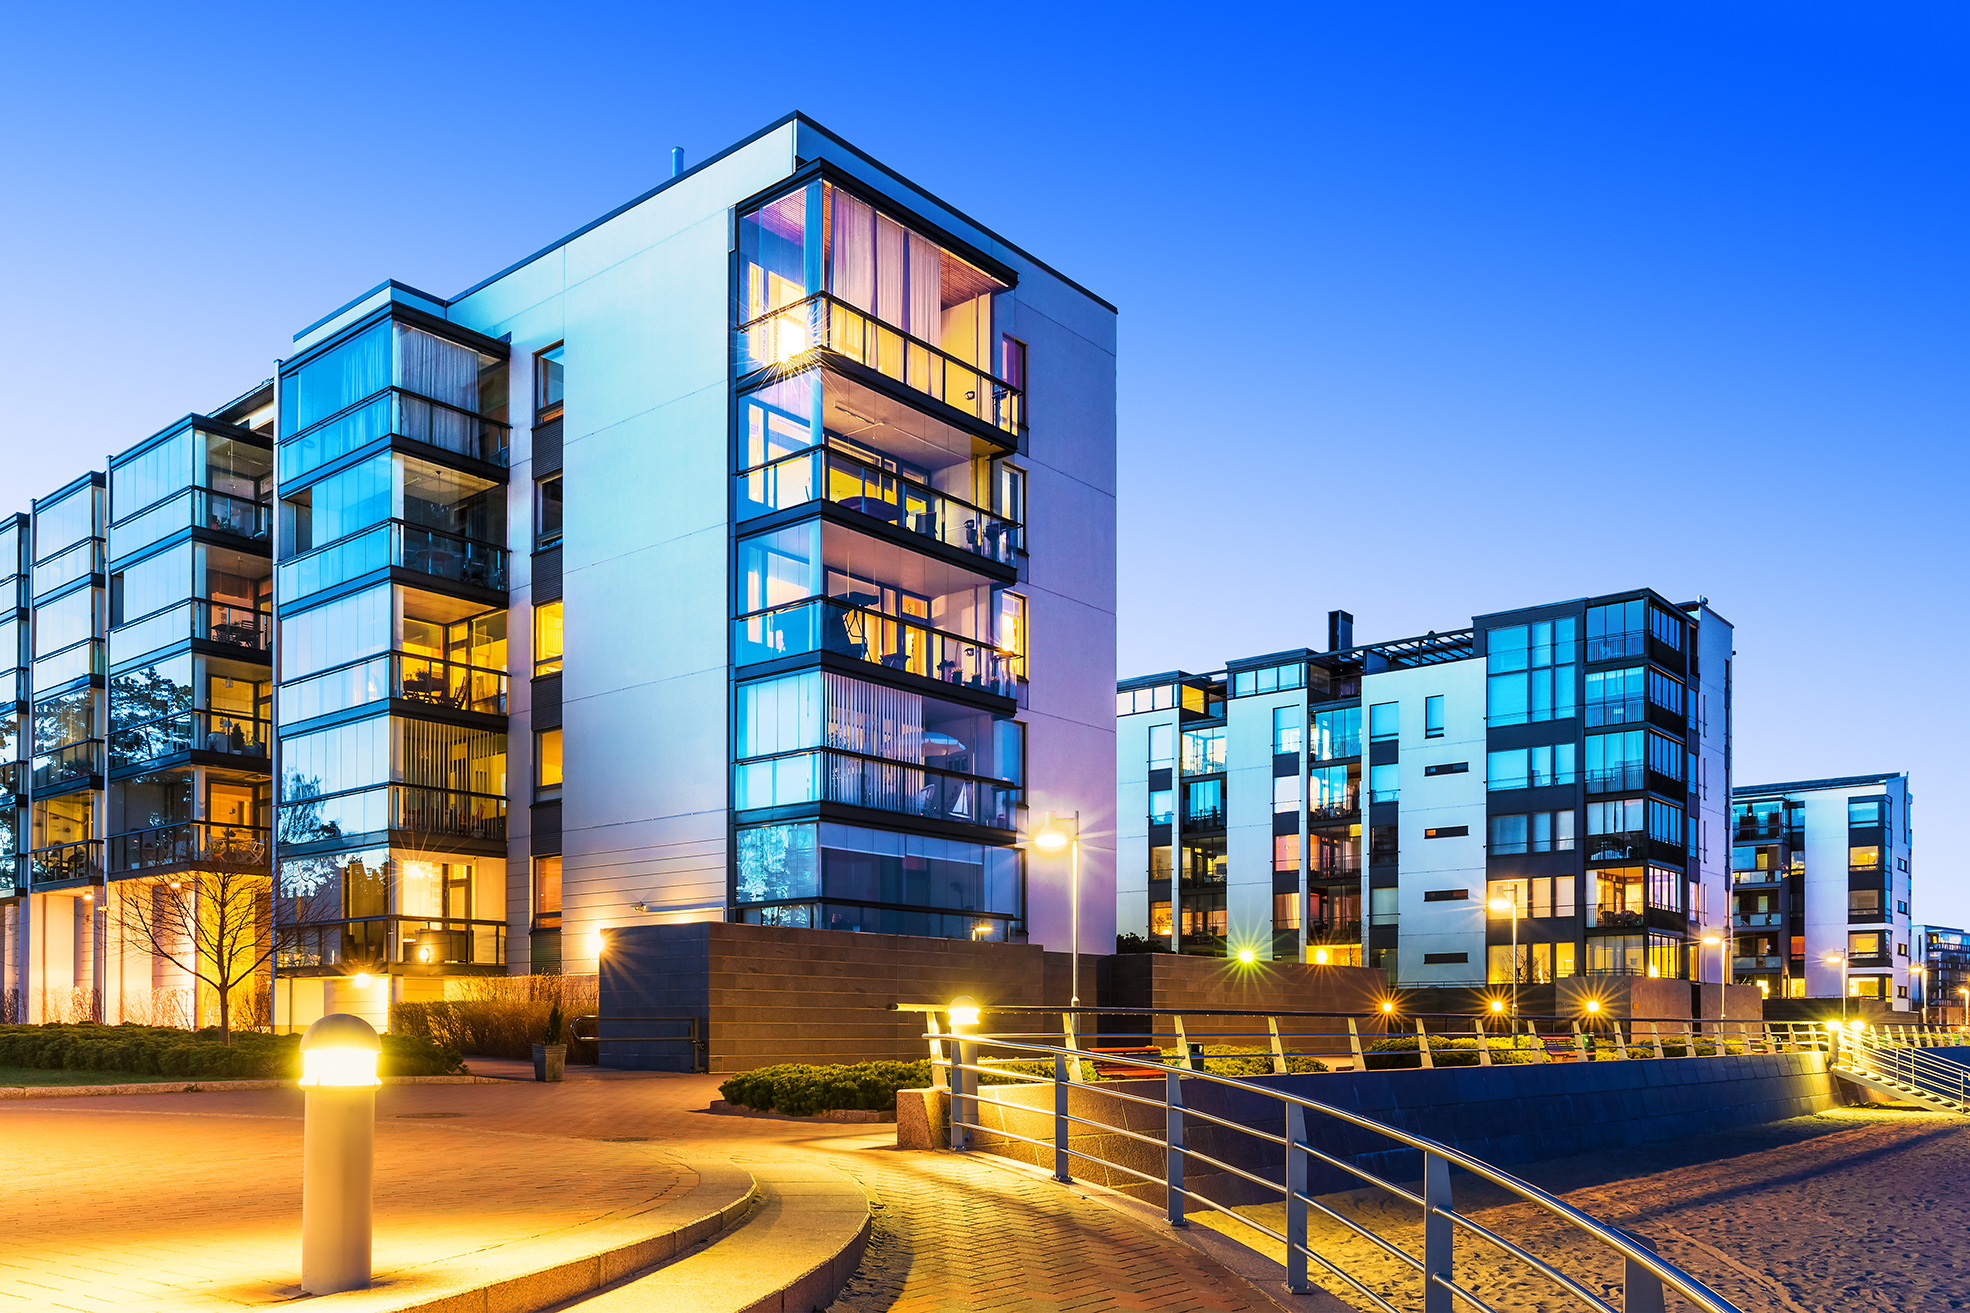 Top 4 Trends for Multifamily Homes in 2021